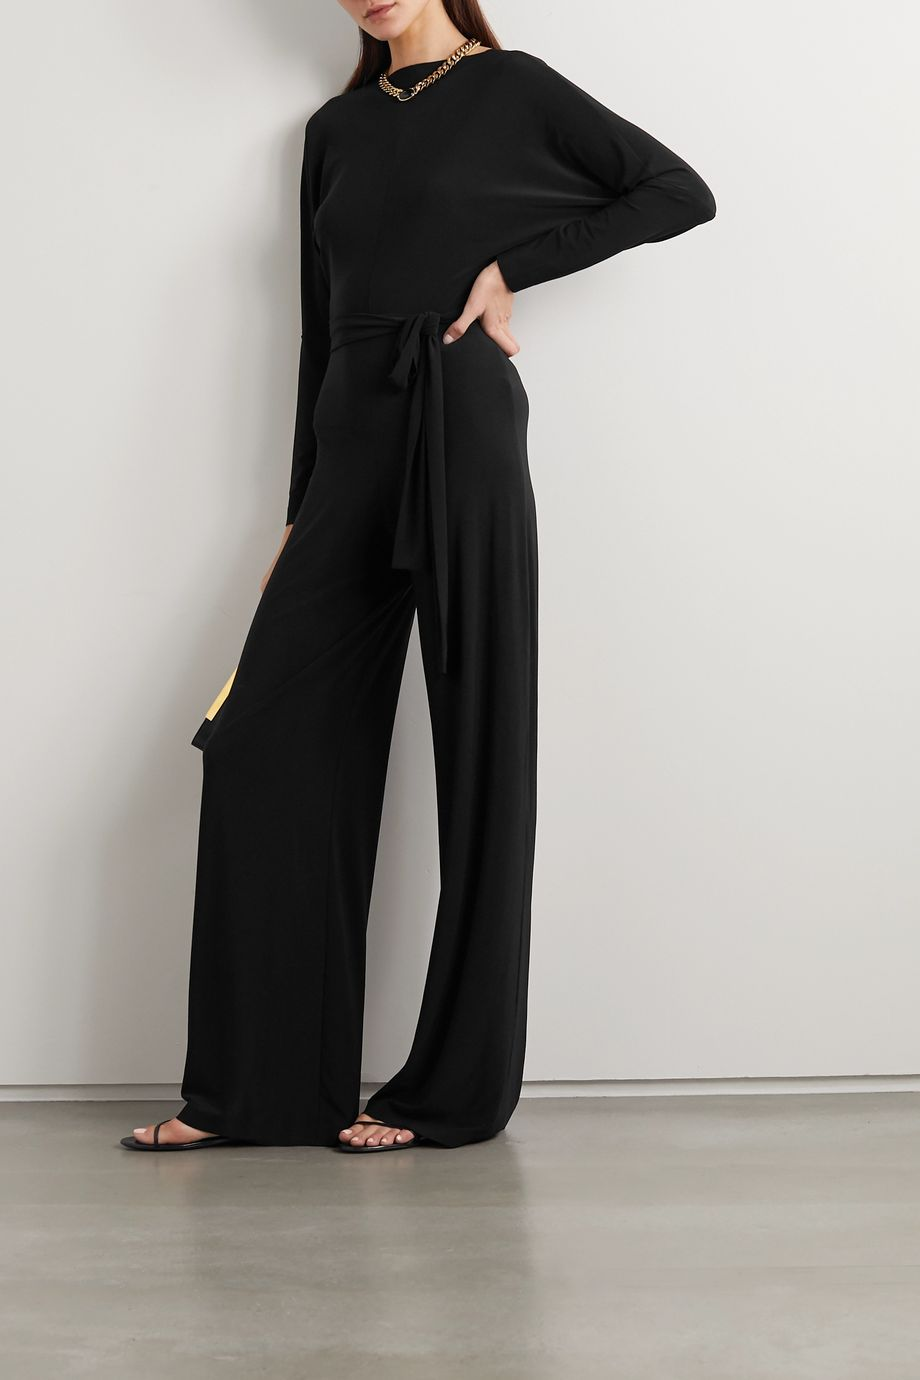 Norma Kamali Belted stretch-jersey jumpsuit